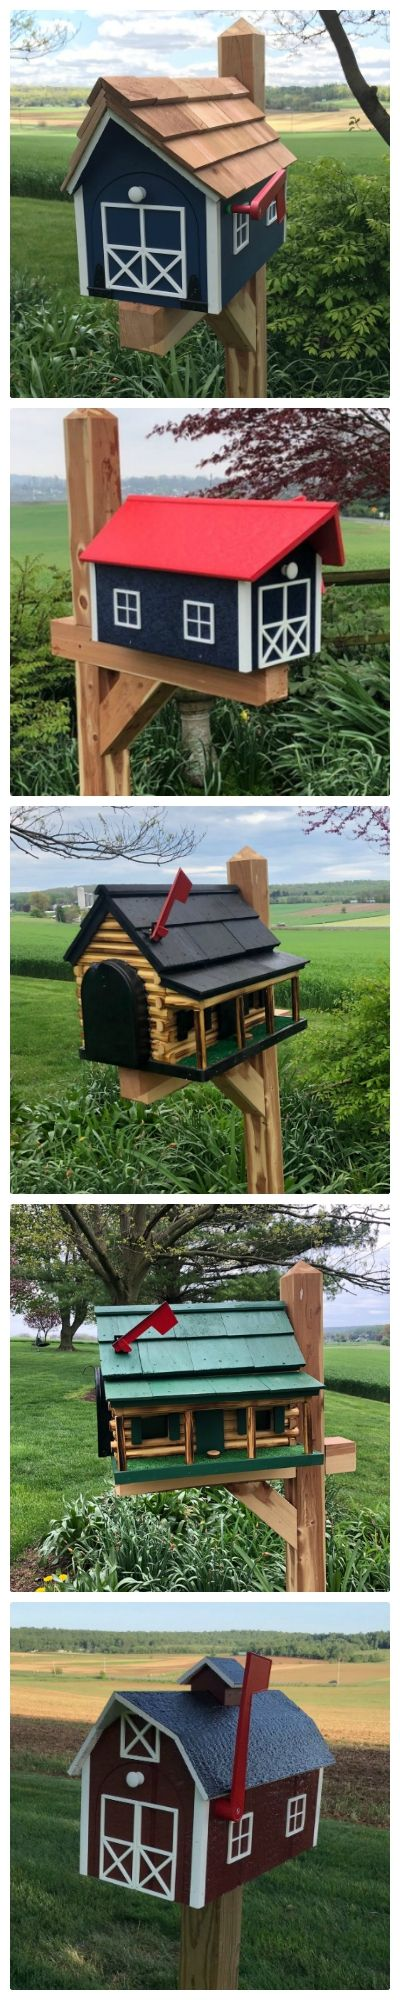 Dog Mailboxes To Buy The Whoot Animal Rug Mailbox Super Cute Cats